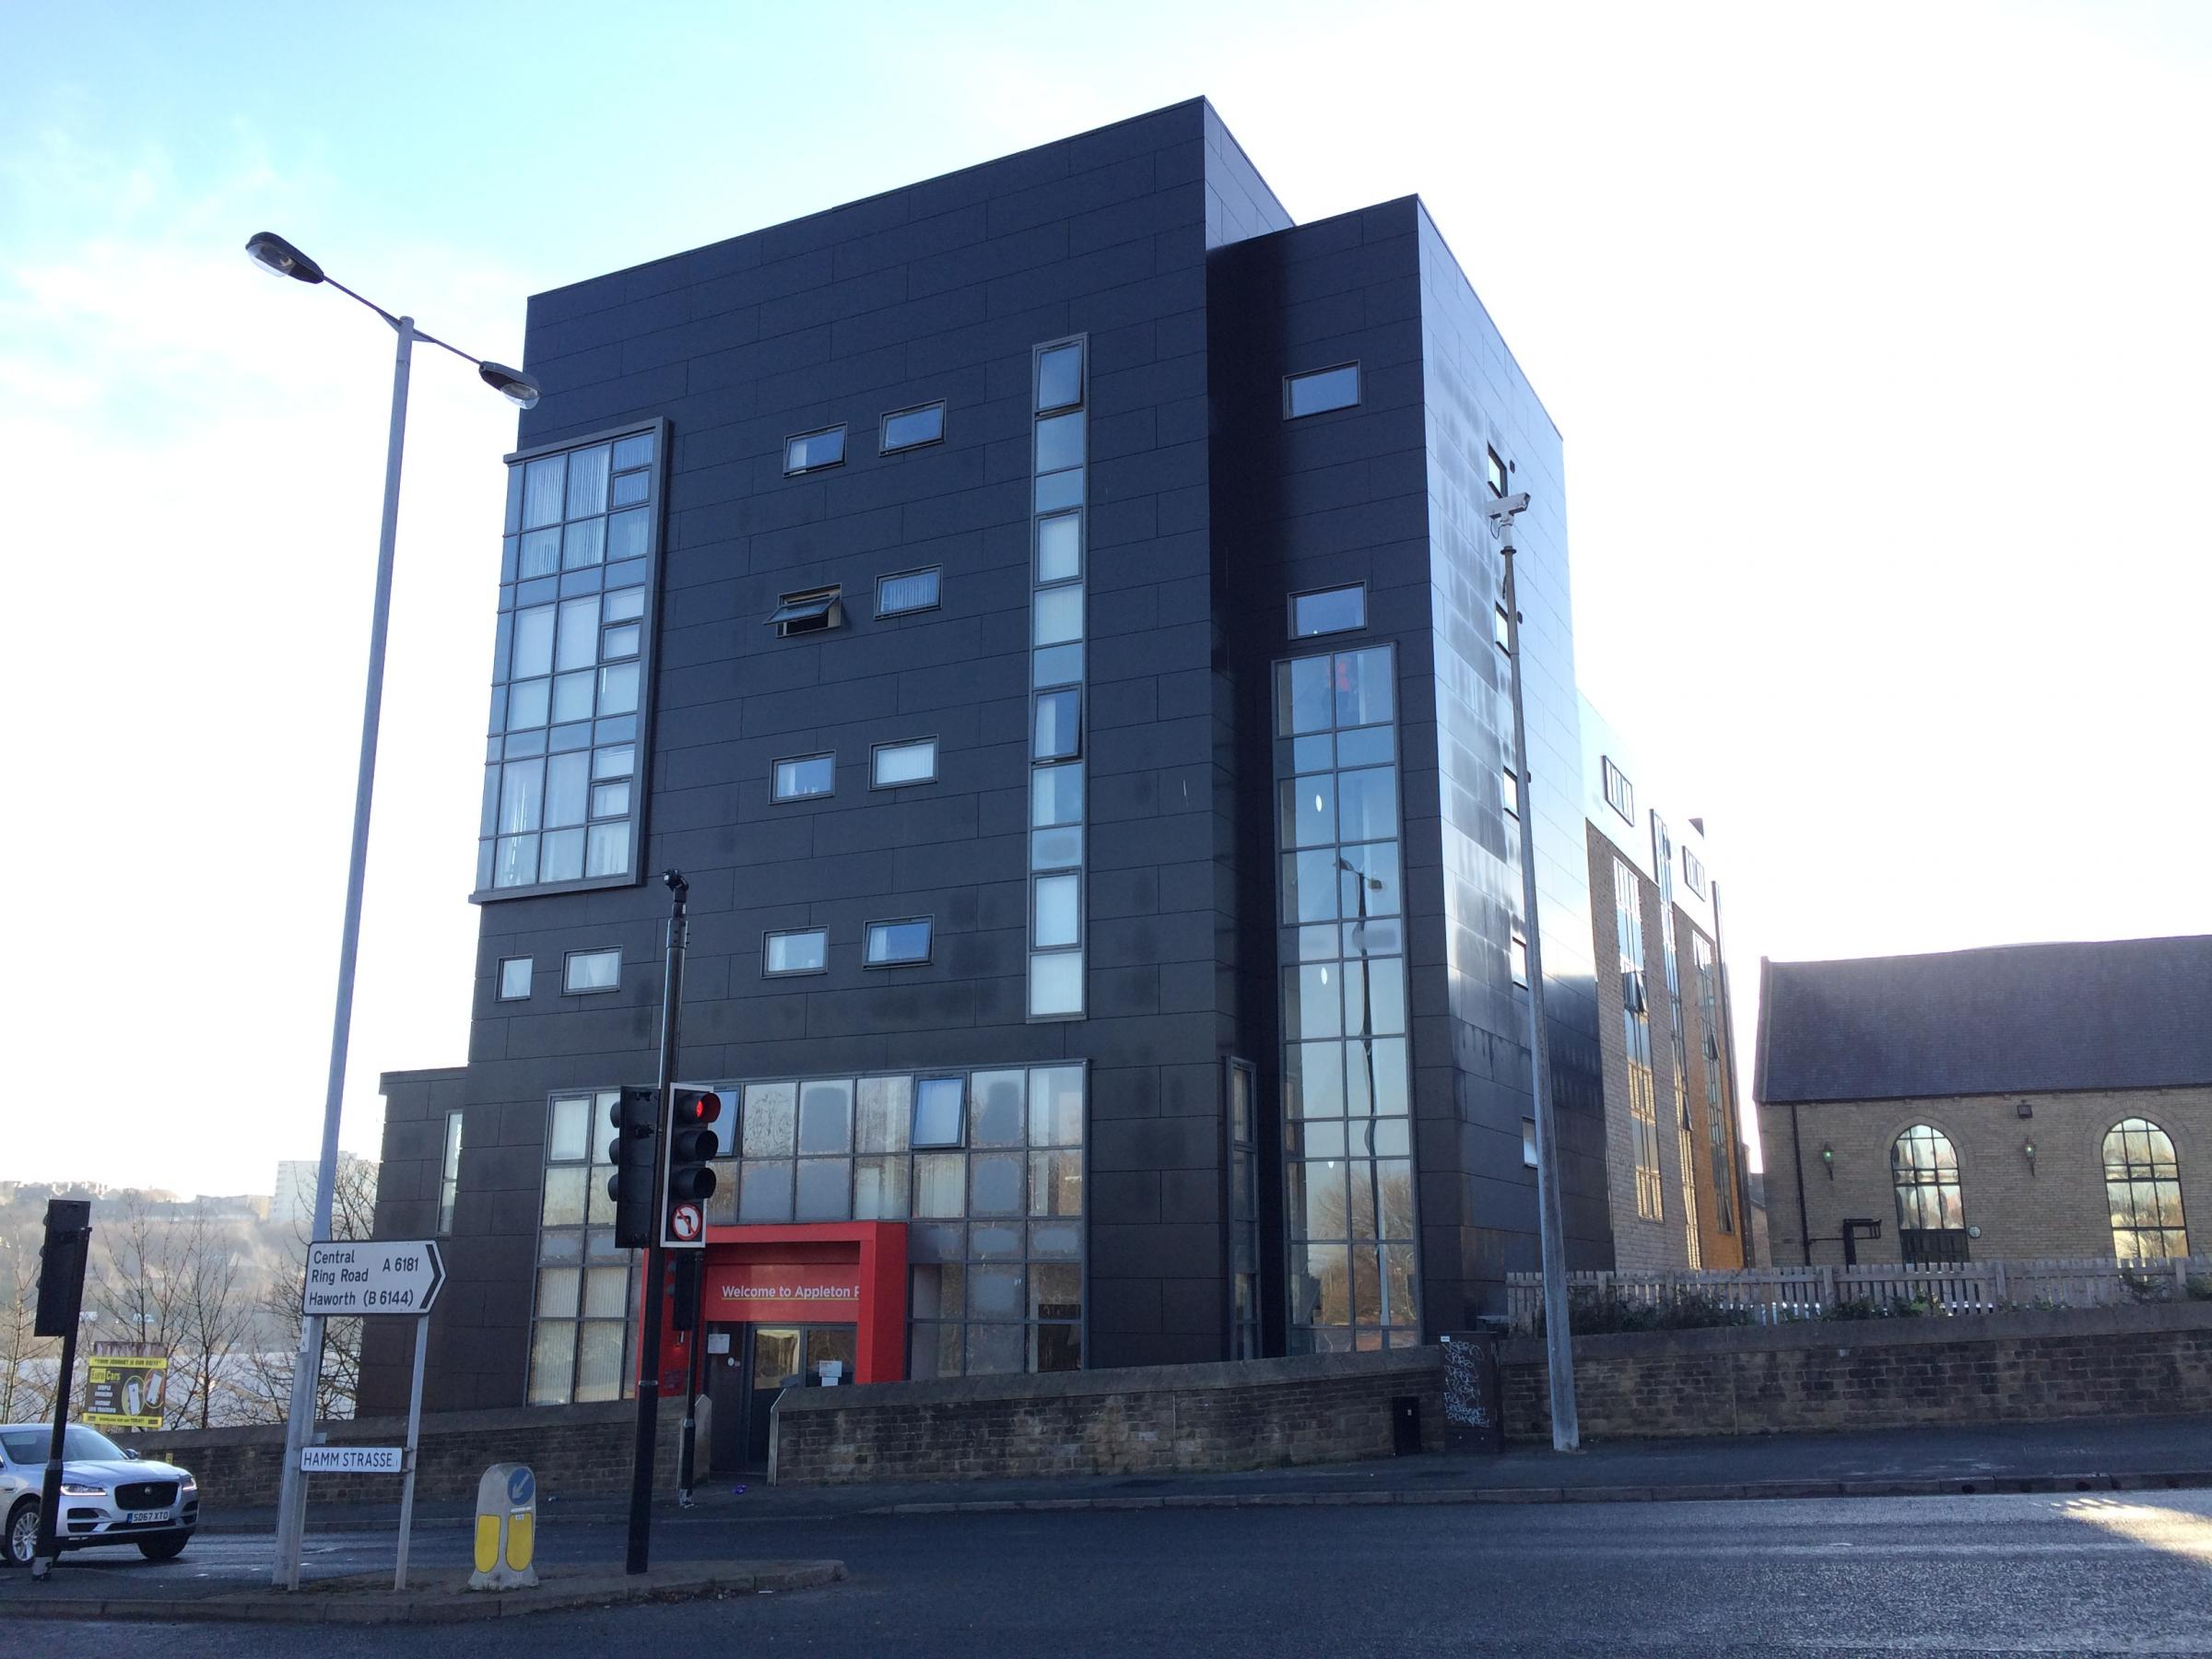 Fire service allays union fears over Bradford high rise fires